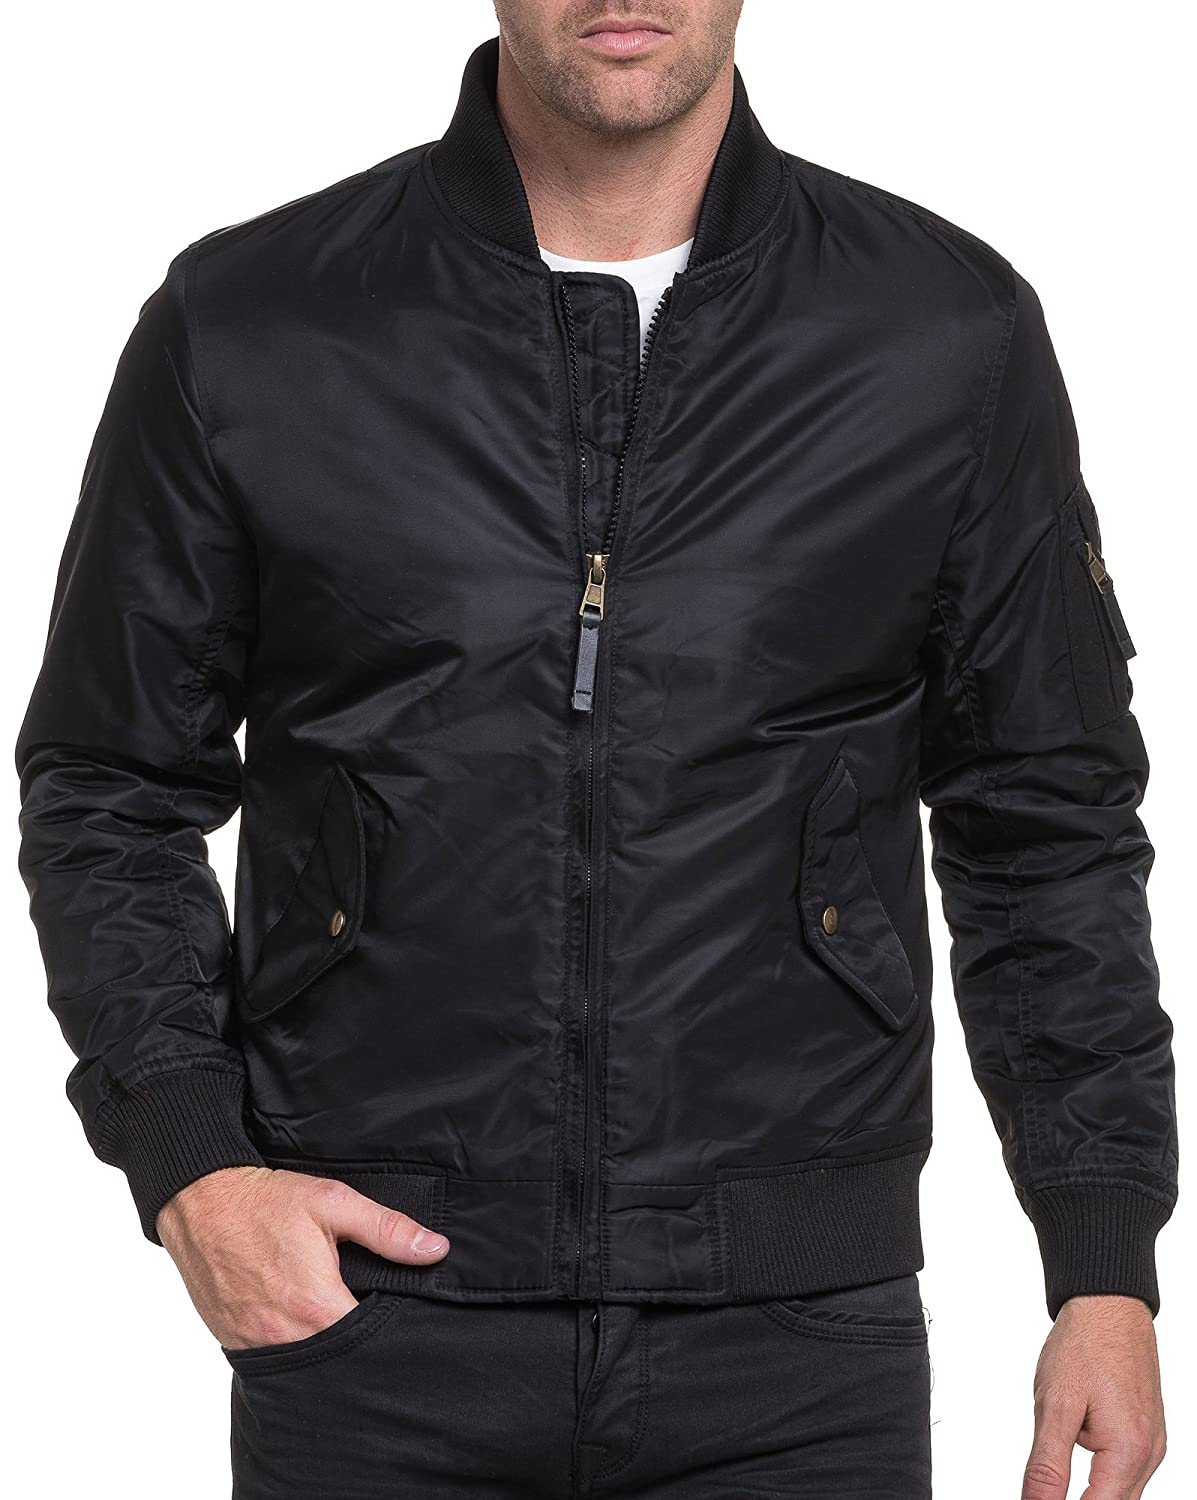 BLZ jeans - Bomber thick black street Men flap pockets